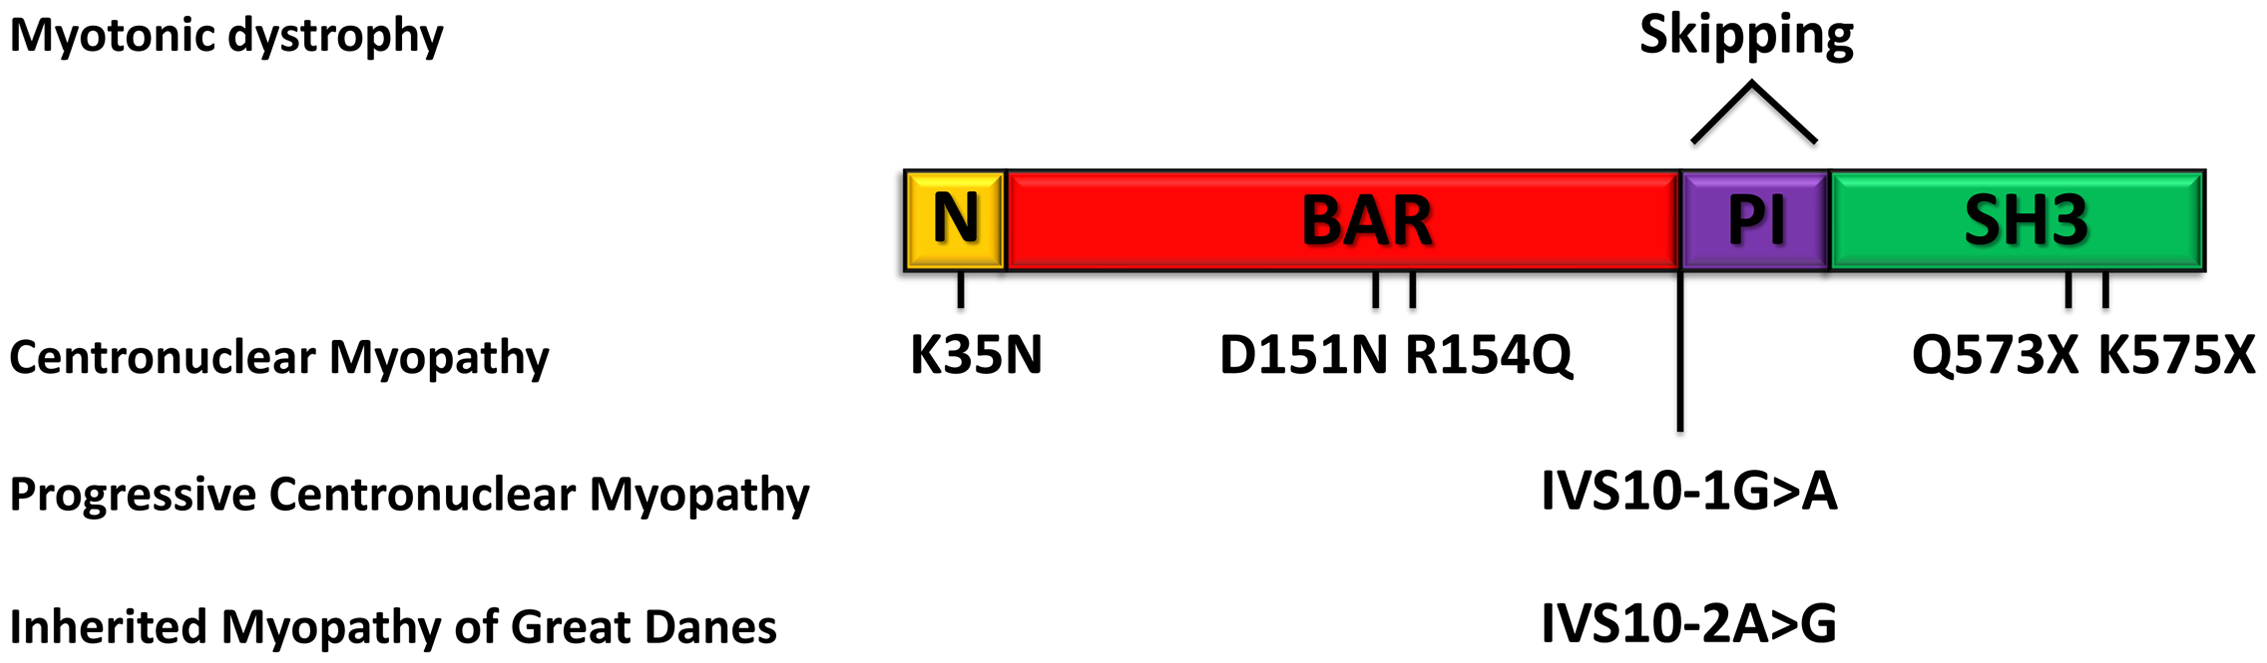 Schematic representation of the amphiphysin 2 domains and <i>BIN1</i> alterations in different myopathies.